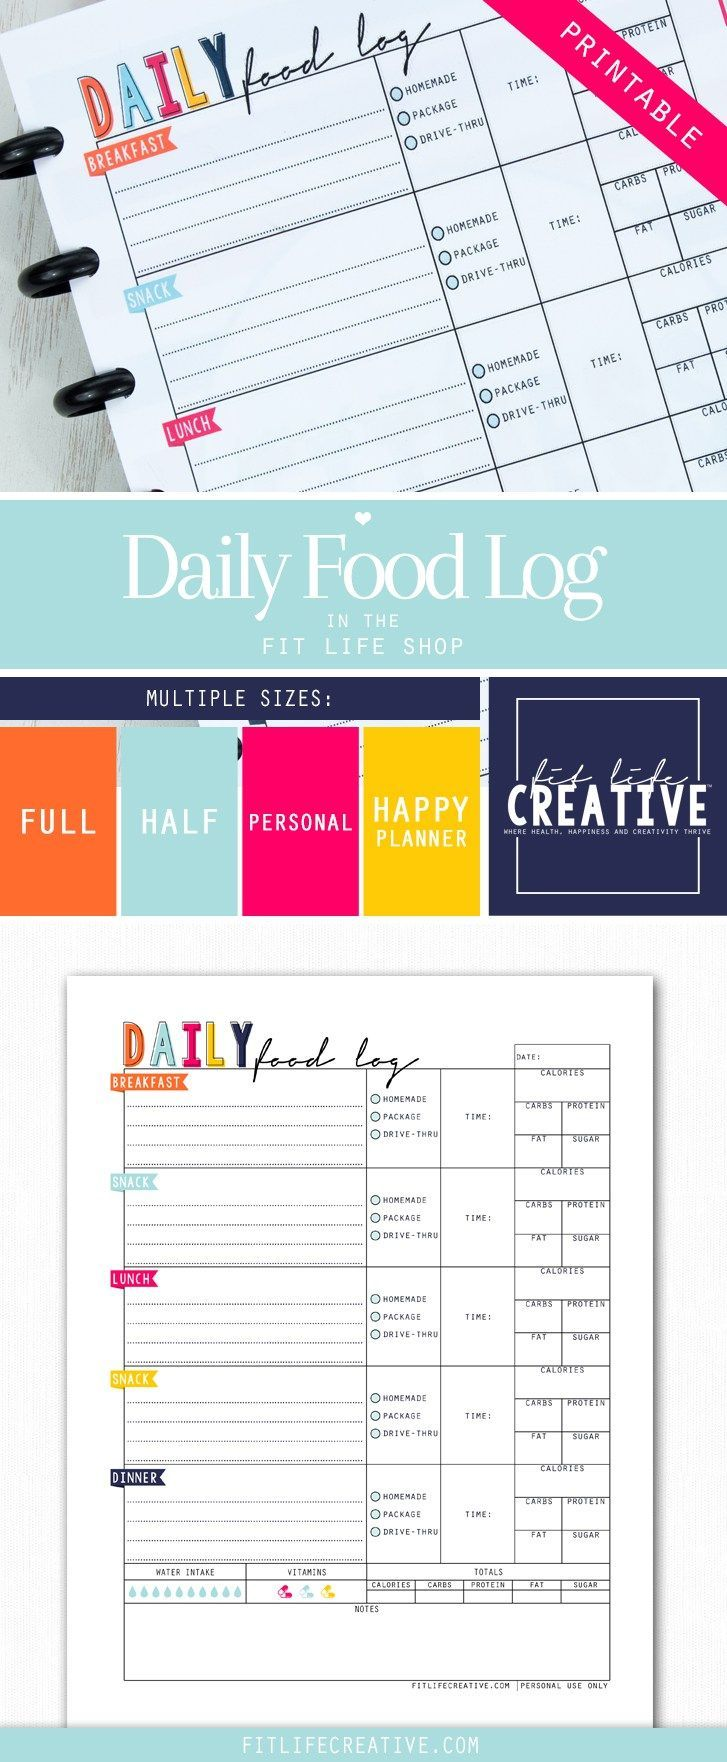 printable daily food log is a great way to keep track of your meals